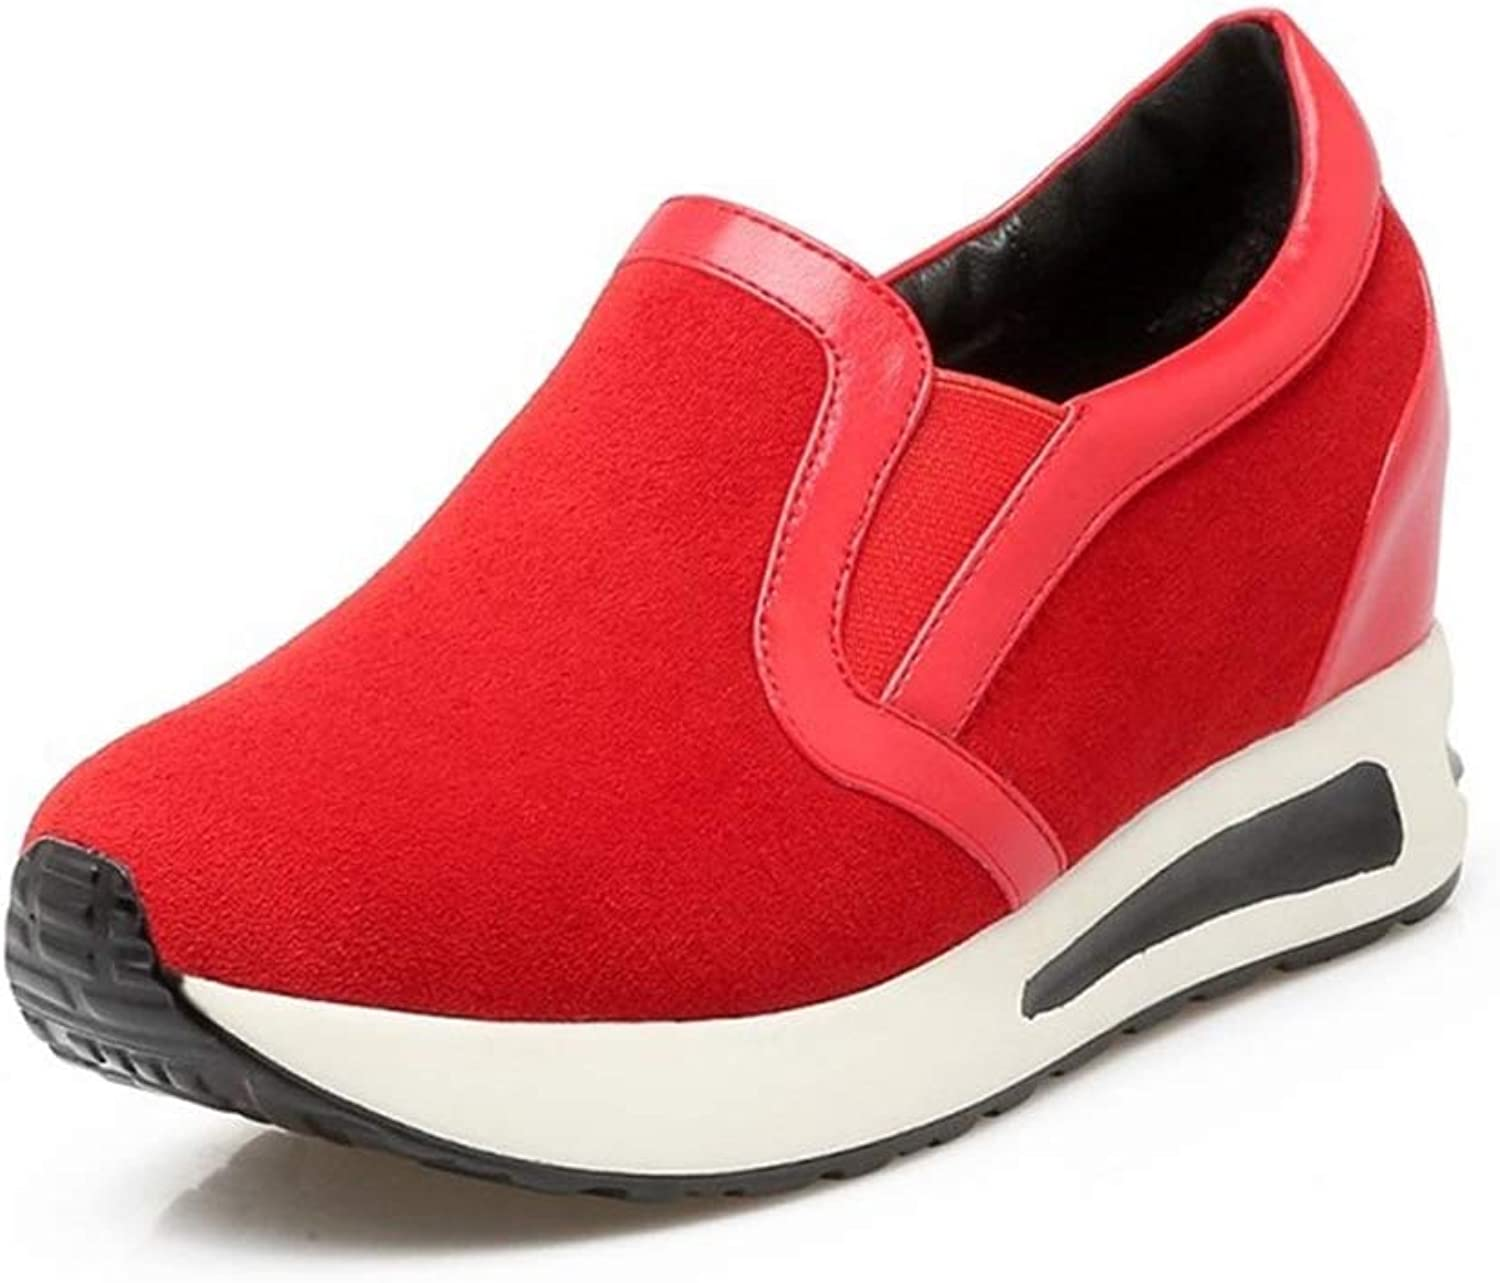 Spring Casual shoes Woman Fashion Platform Comfort shoes Female Walking Sneakers Hidden Wedges Heels